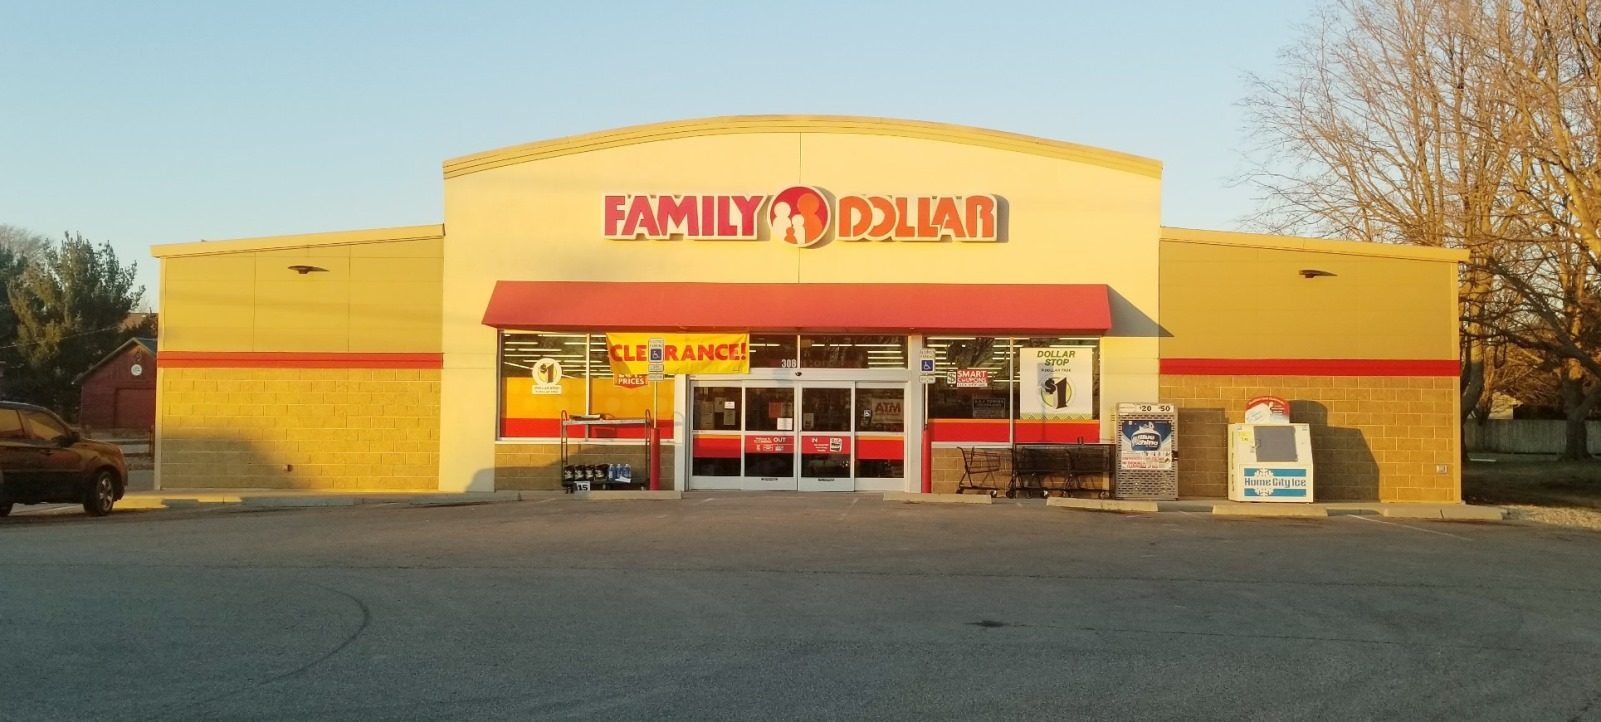 Ohio Net Leased Family Dollar